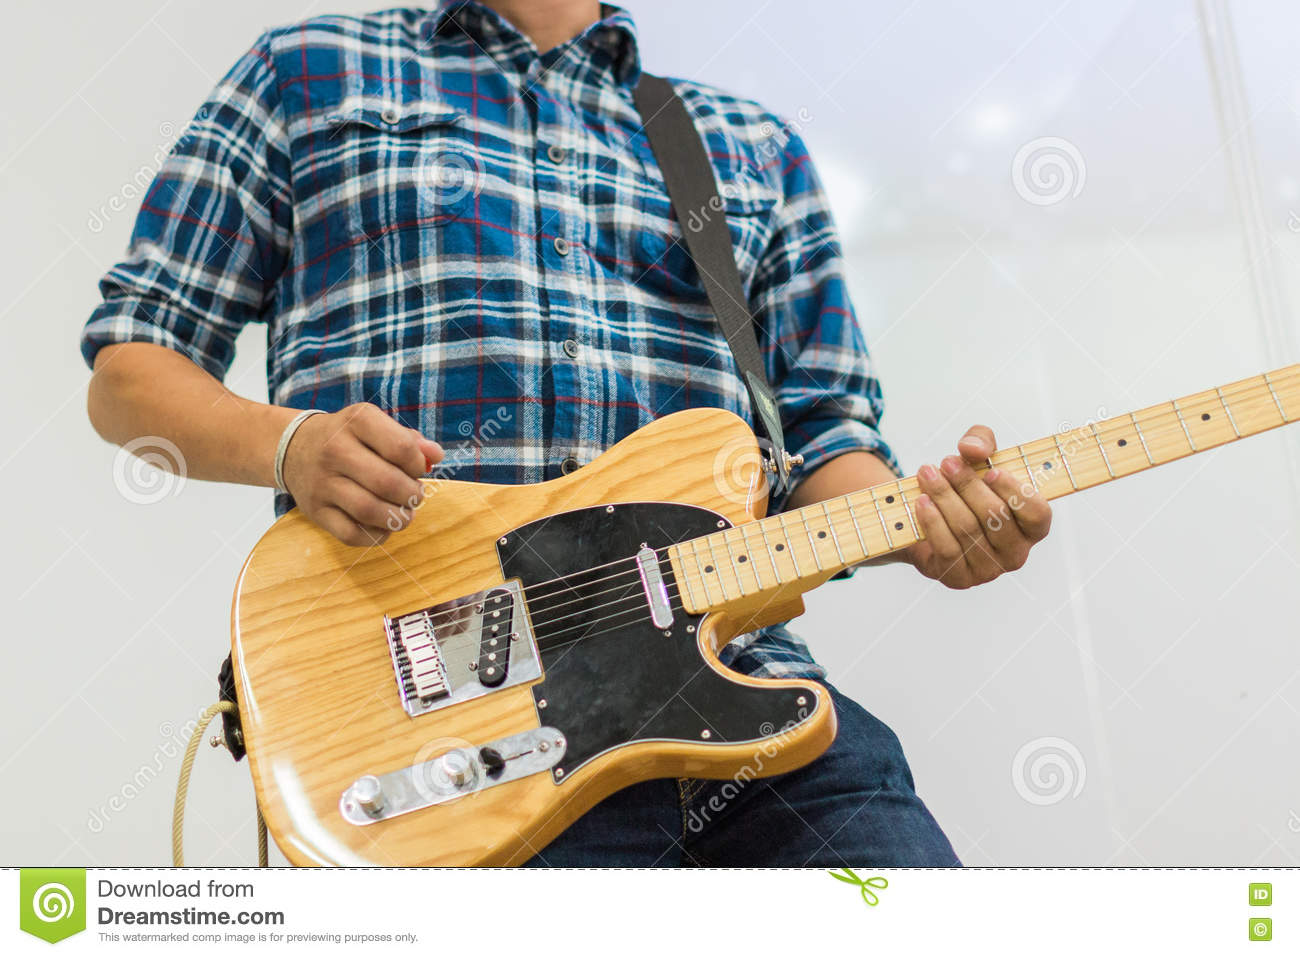 man guitar player on electric guitar telecaster stock photo image of acoustic musical 79729124. Black Bedroom Furniture Sets. Home Design Ideas